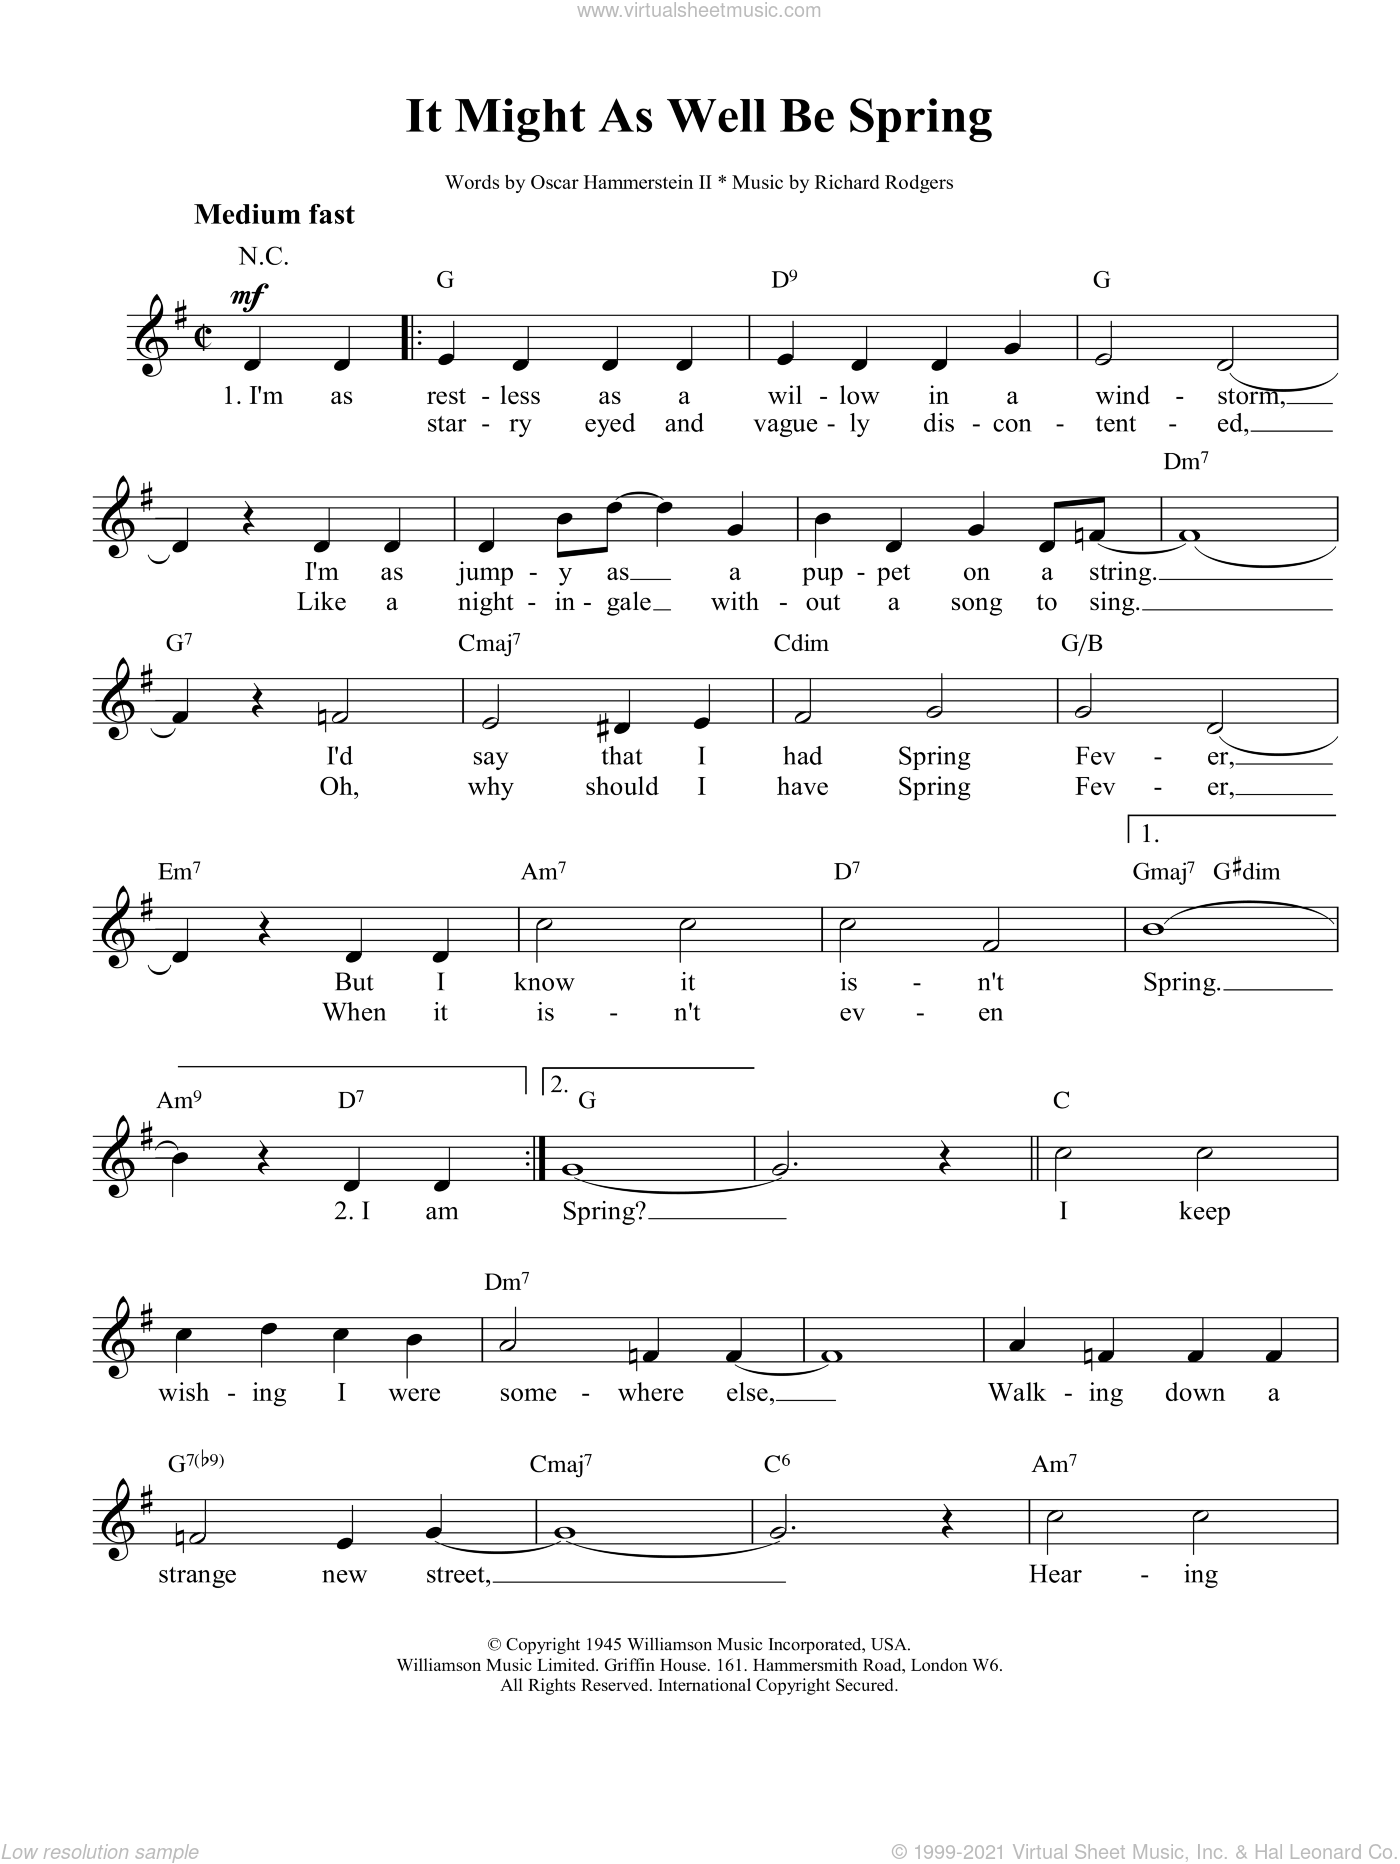 It Might As Well Be Spring sheet music for voice and other instruments (fake book) by Rodgers & Hammerstein, Oscar II Hammerstein and Richard Rodgers, intermediate skill level